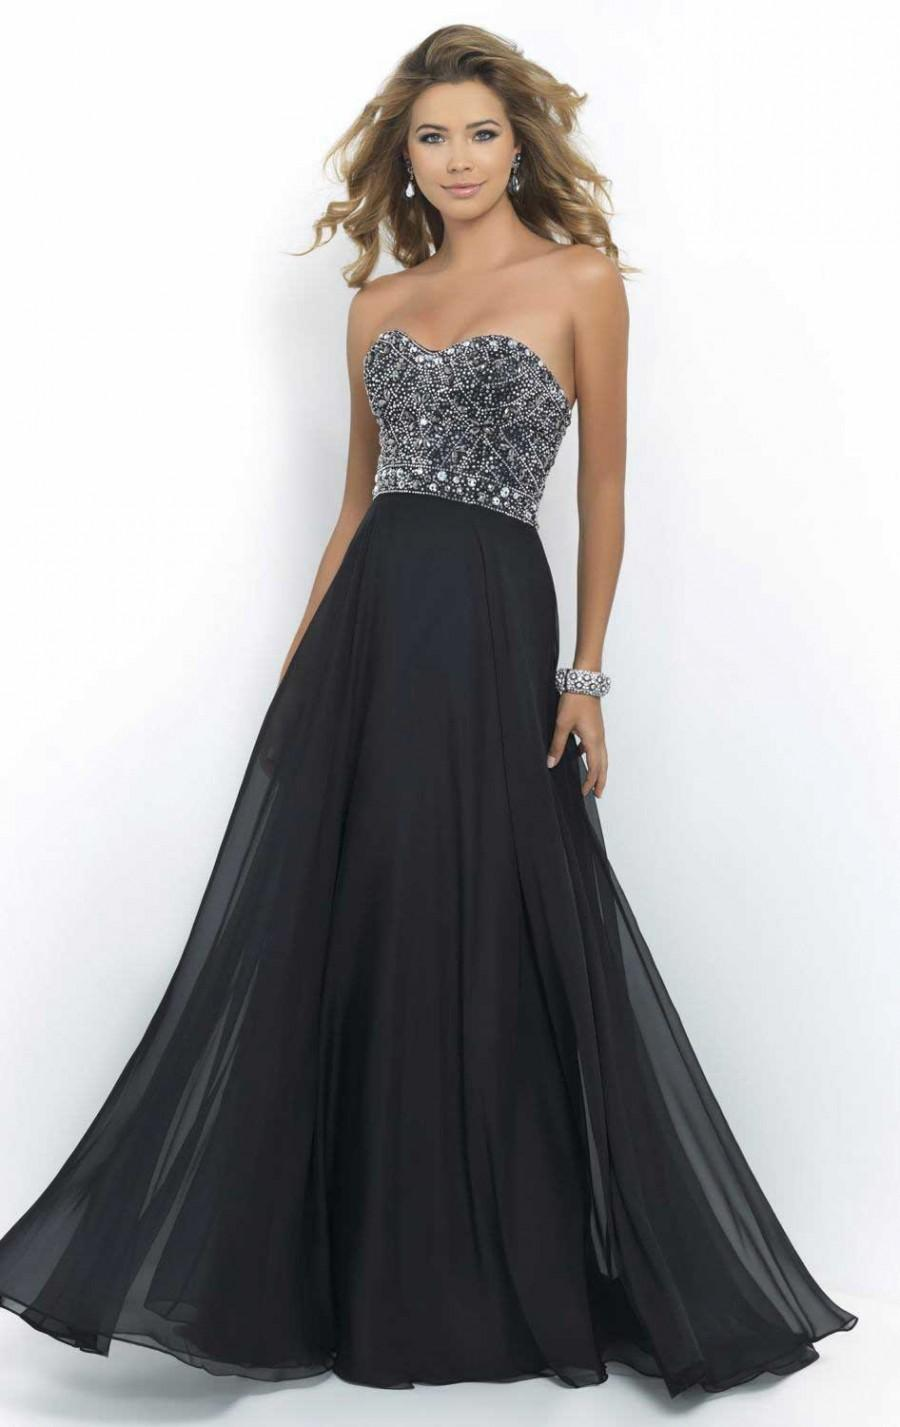 Hochzeit - Embellished A-Line Strapless Long Beaded Prom Dress